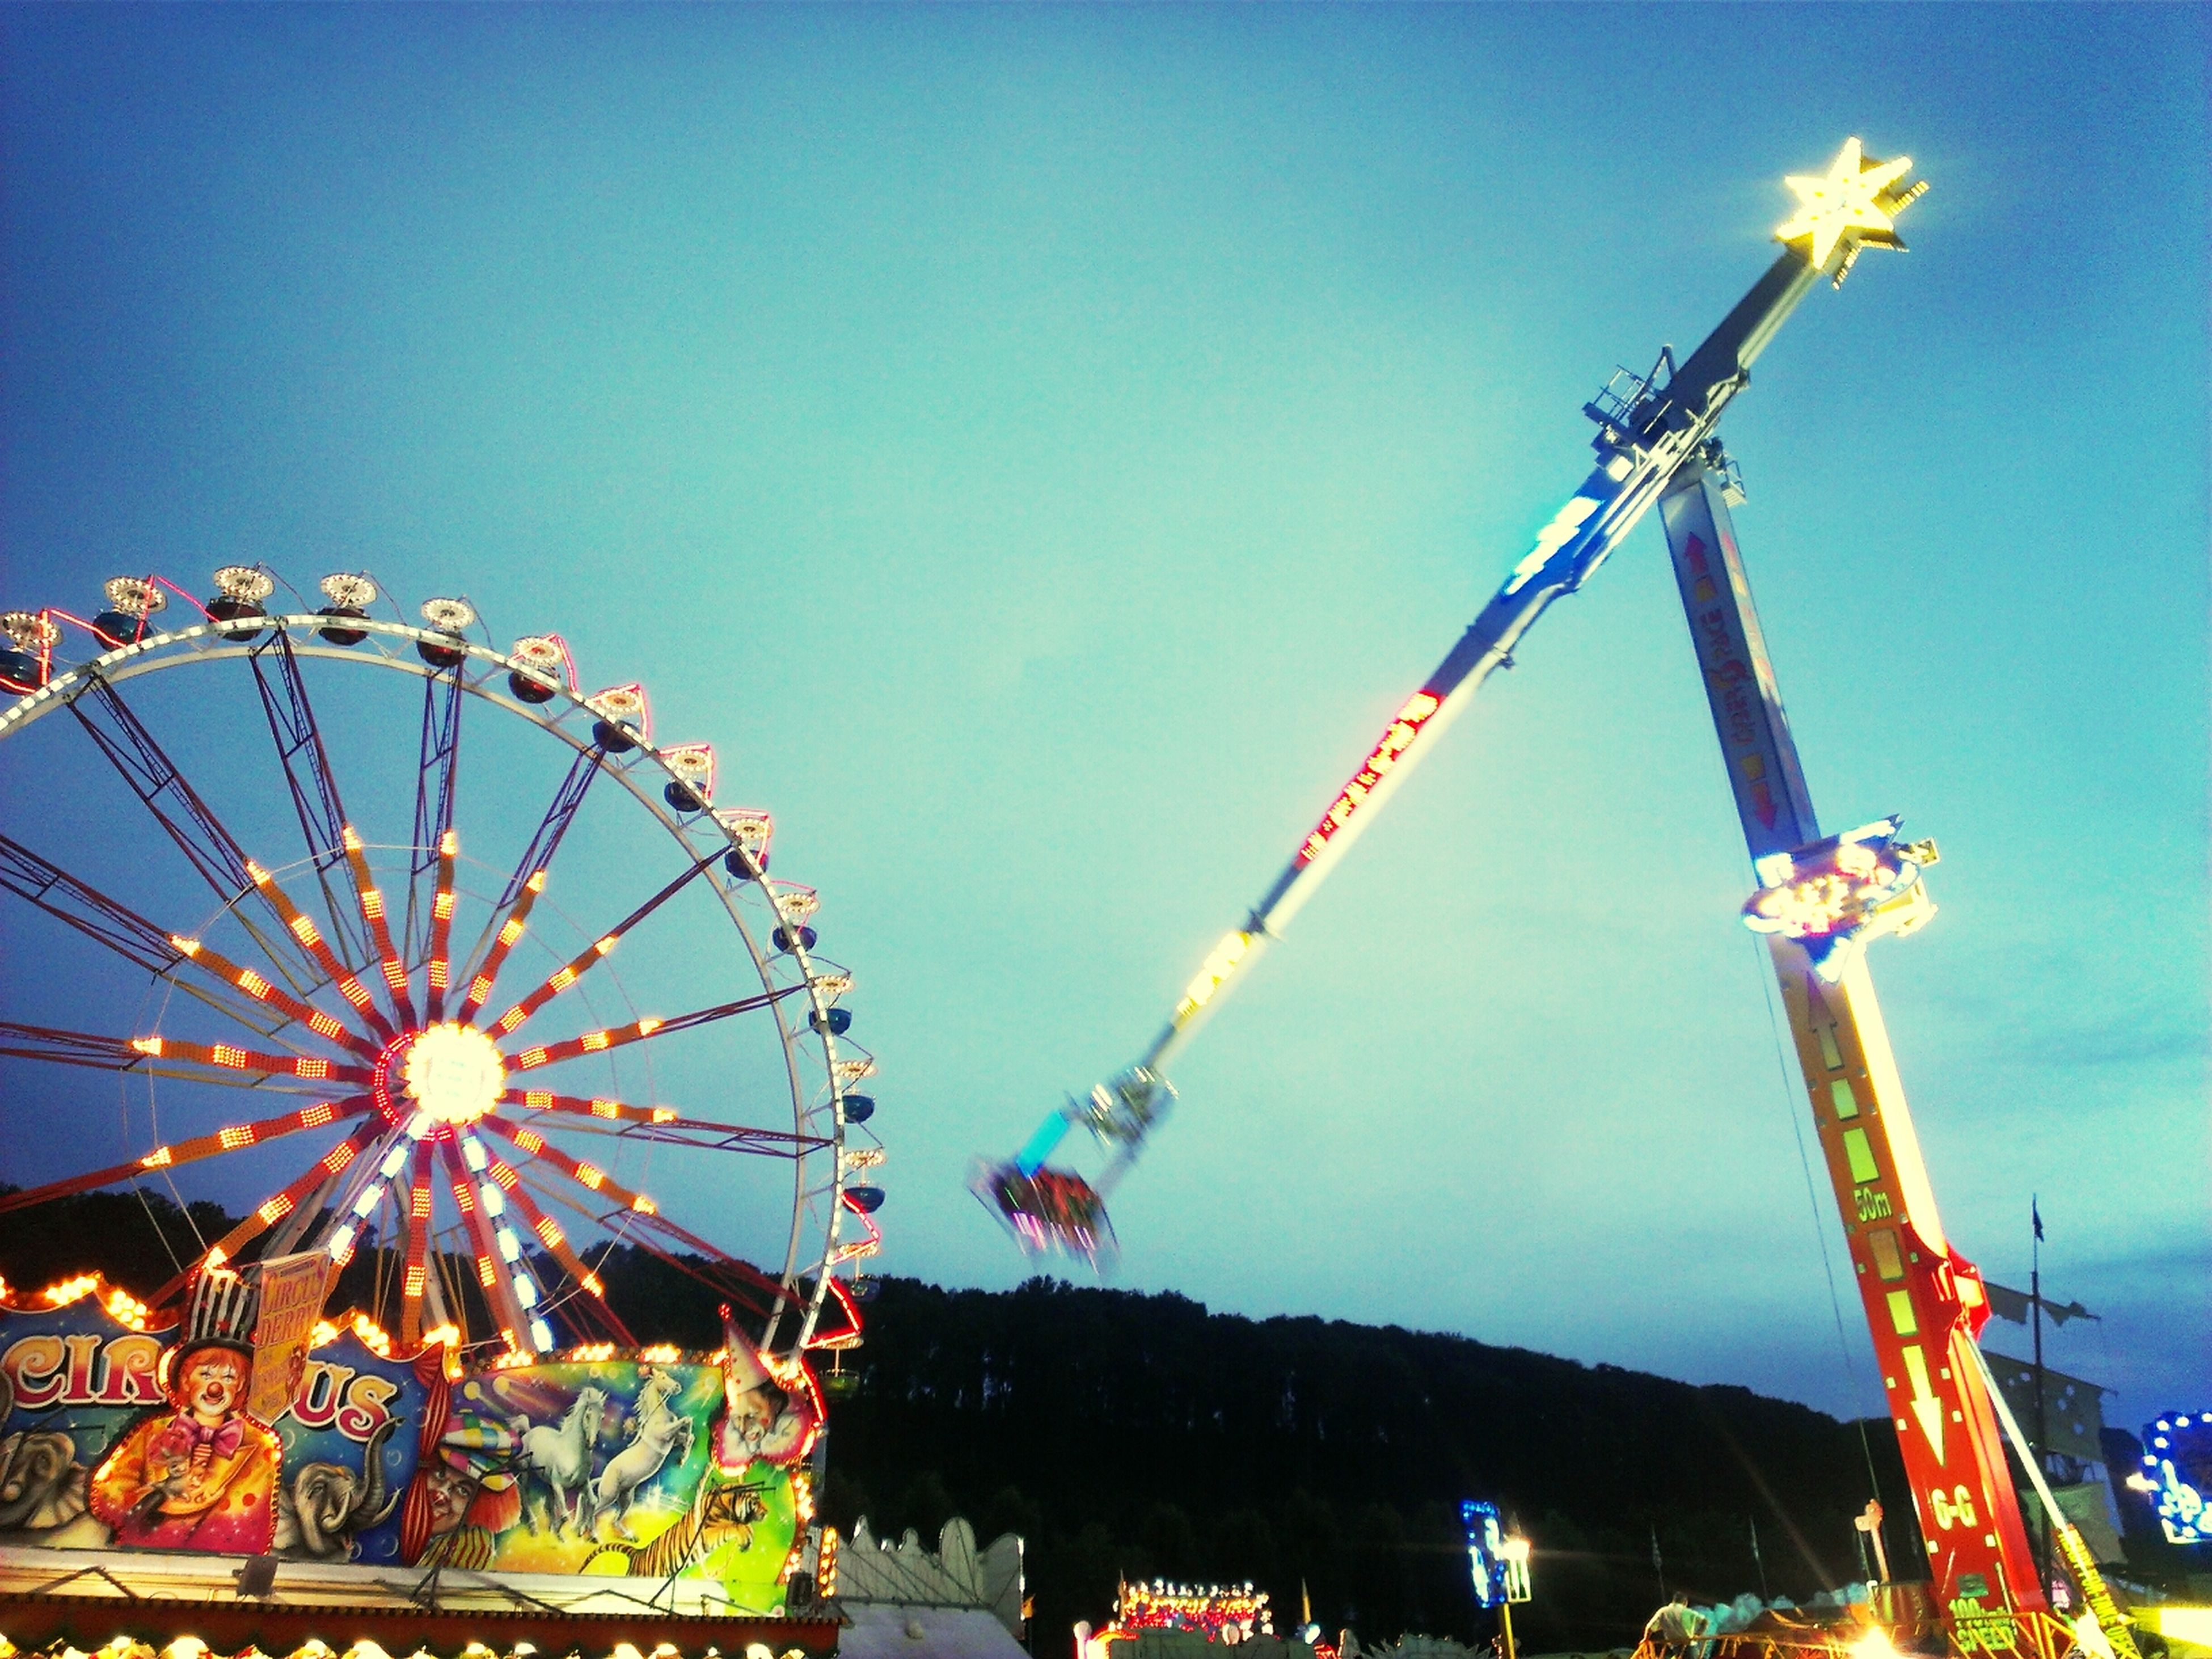 amusement park, amusement park ride, arts culture and entertainment, illuminated, low angle view, ferris wheel, clear sky, night, copy space, fun, sky, blue, carousel, chain swing ride, enjoyment, built structure, outdoors, lighting equipment, dusk, traveling carnival